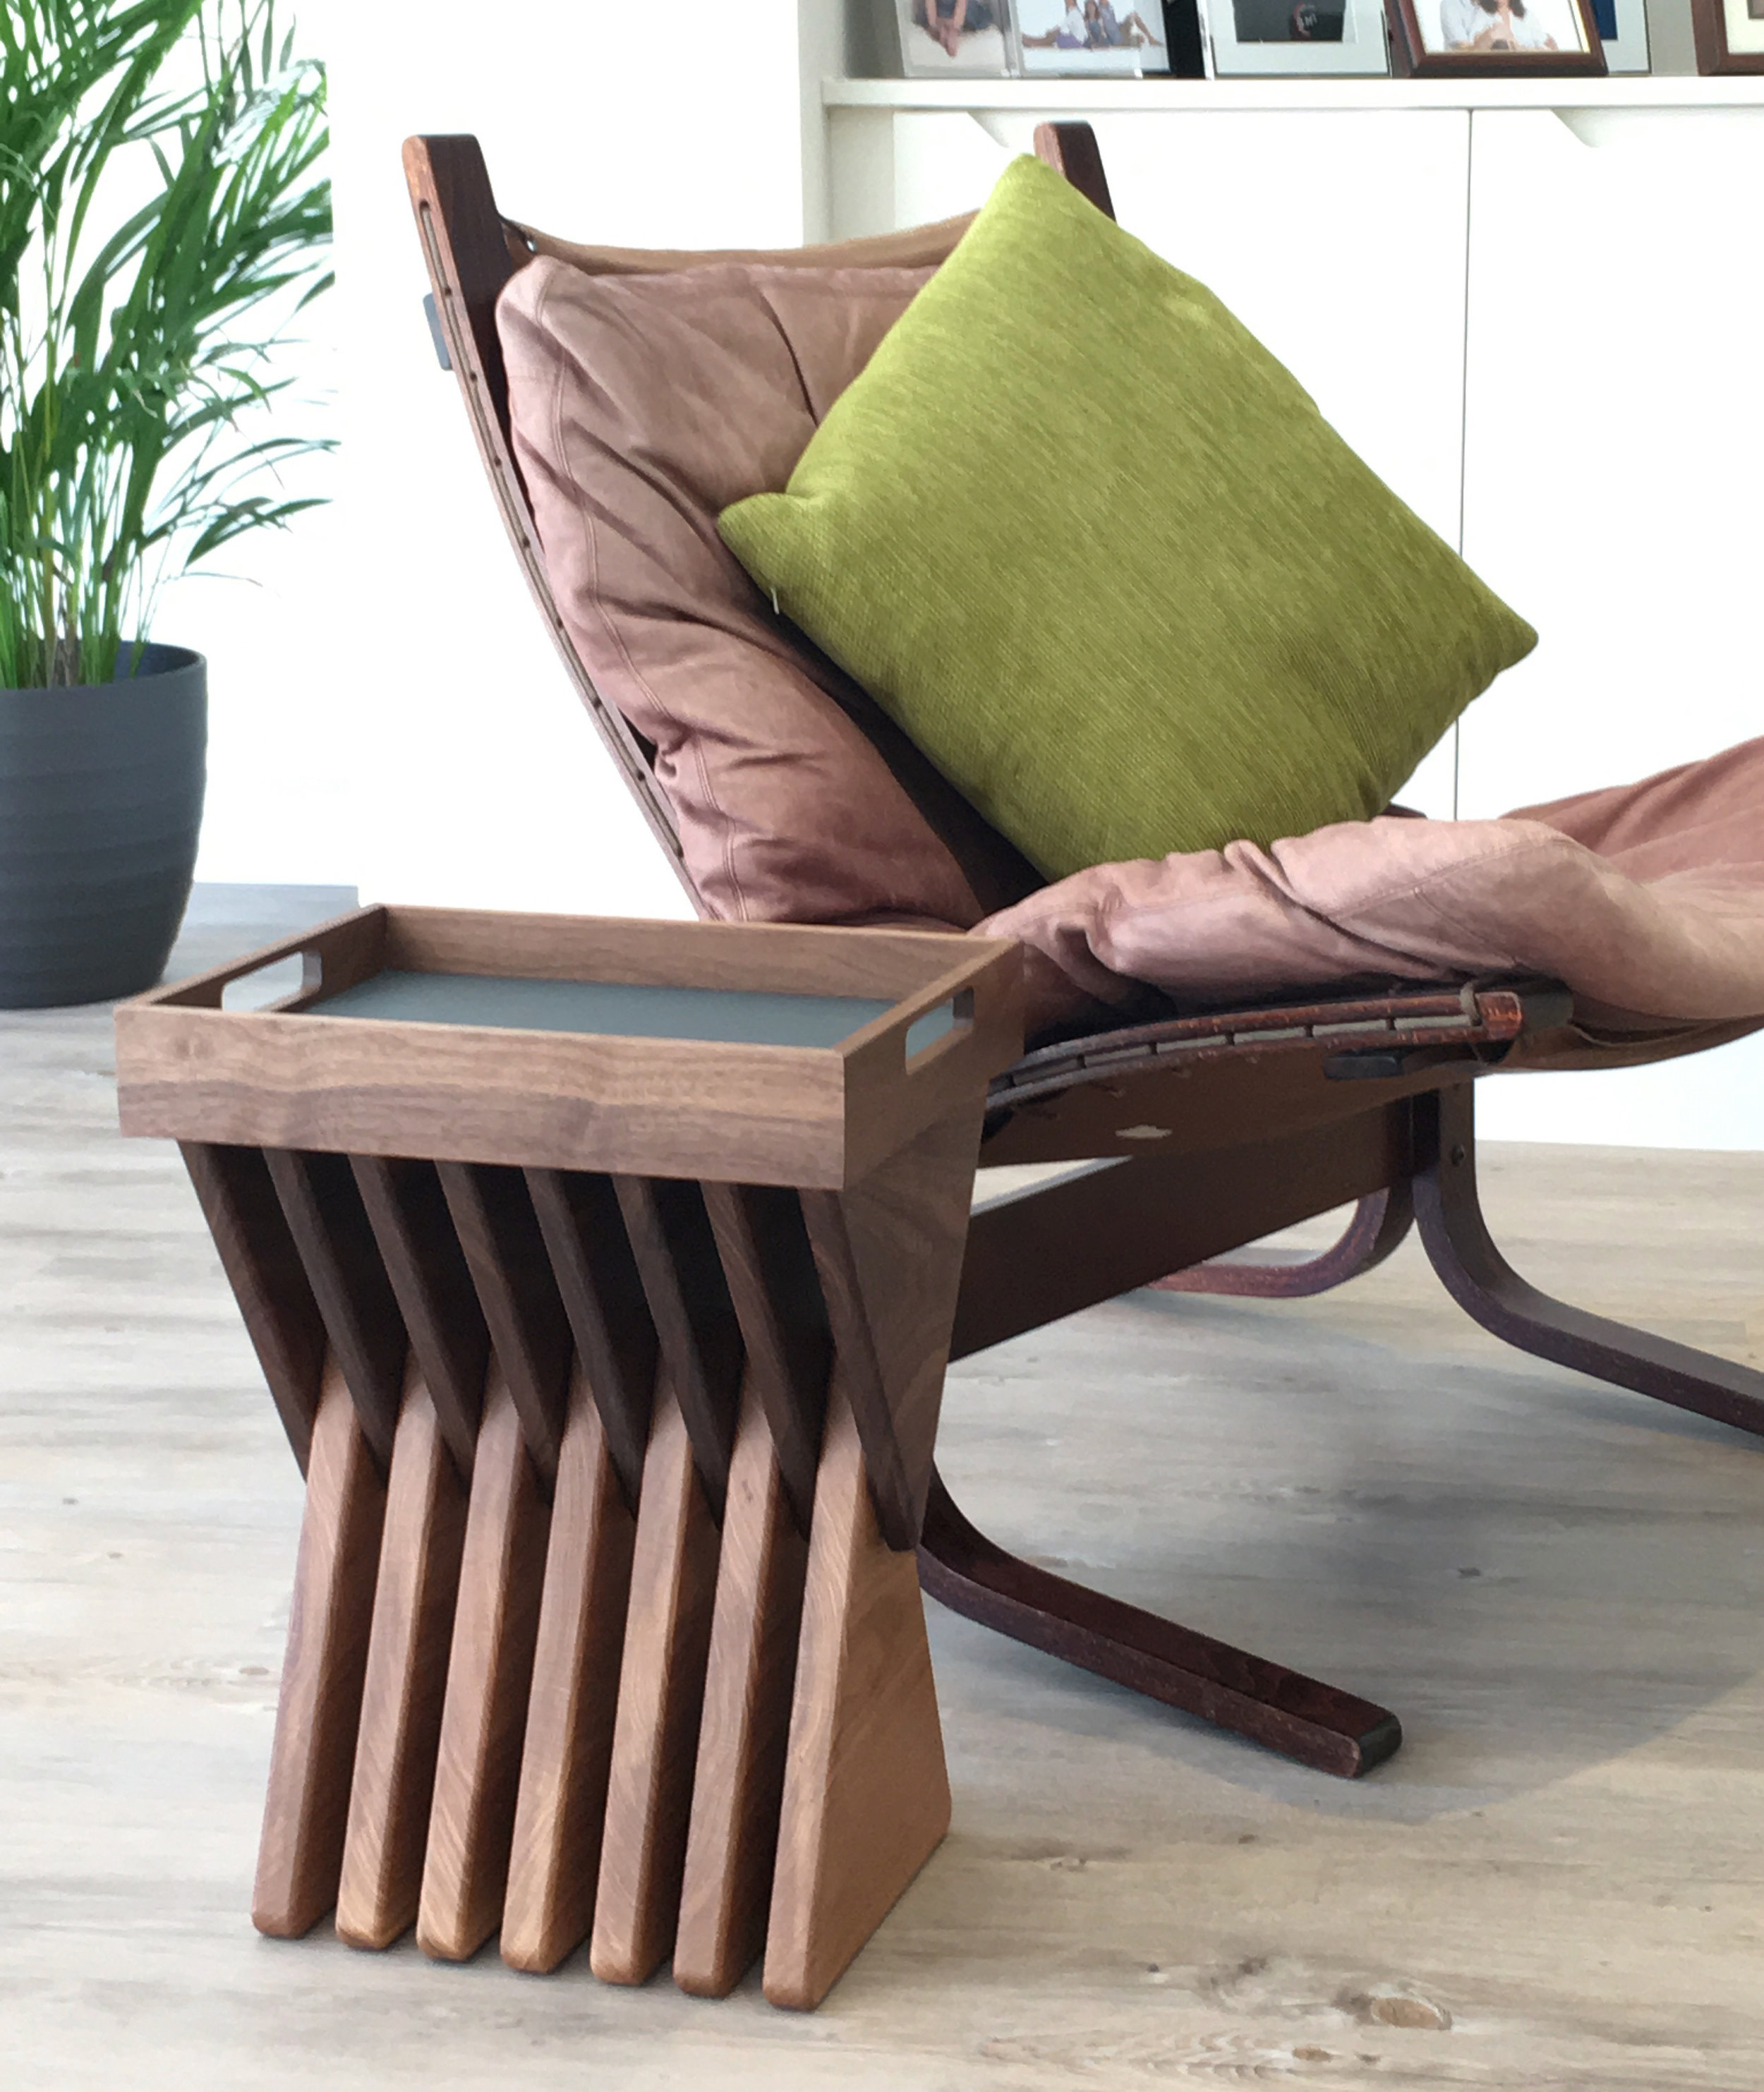 The Vinci Stool in-situ